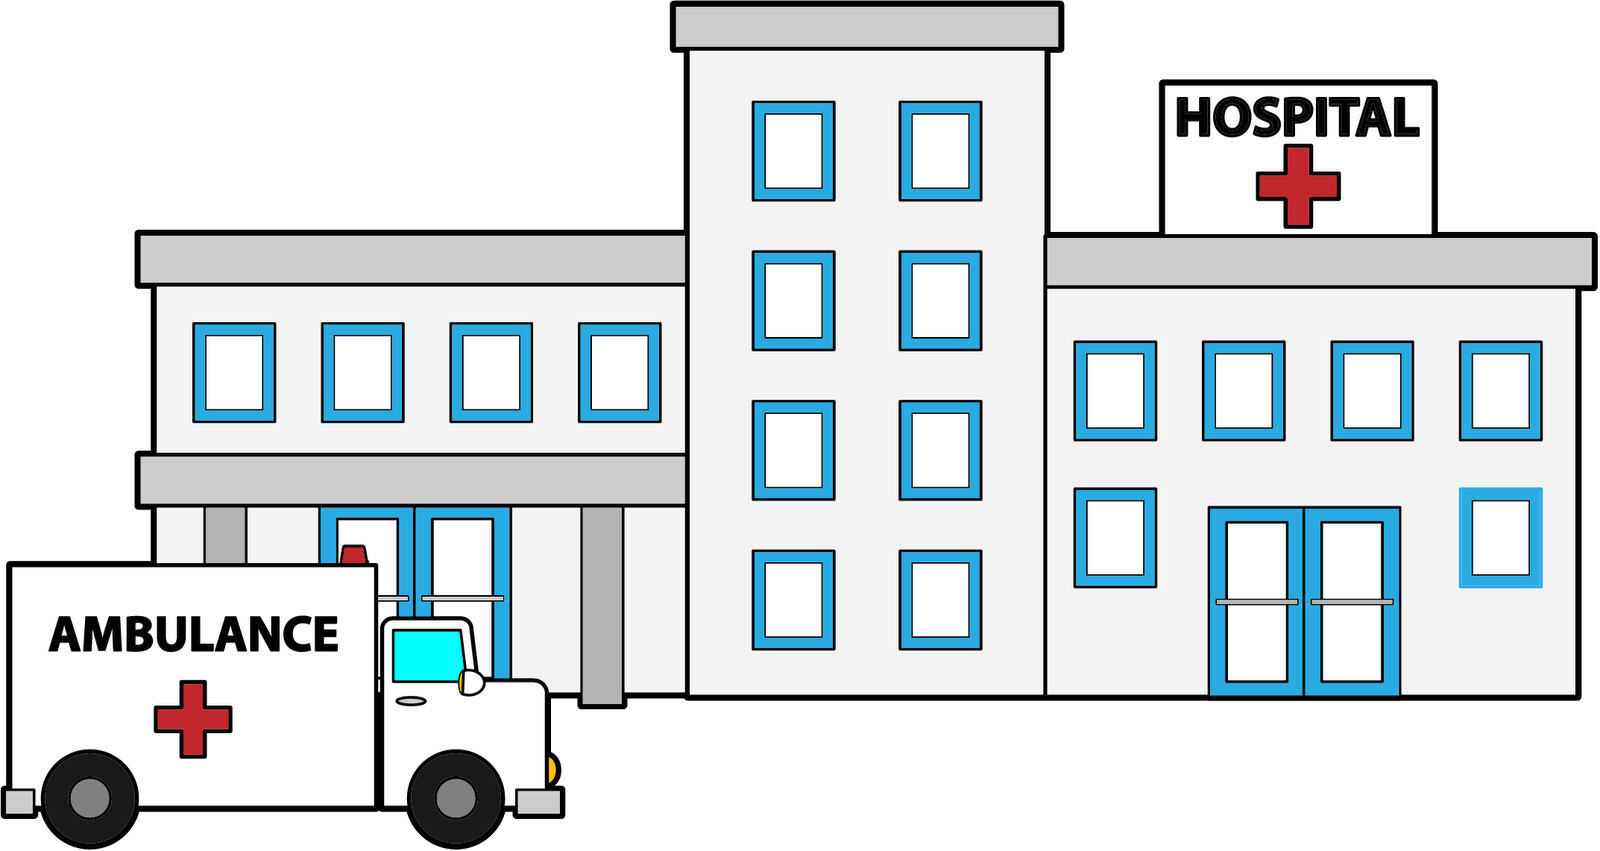 1600x851 Hospital Building Clipart Black And White Clip Art Library